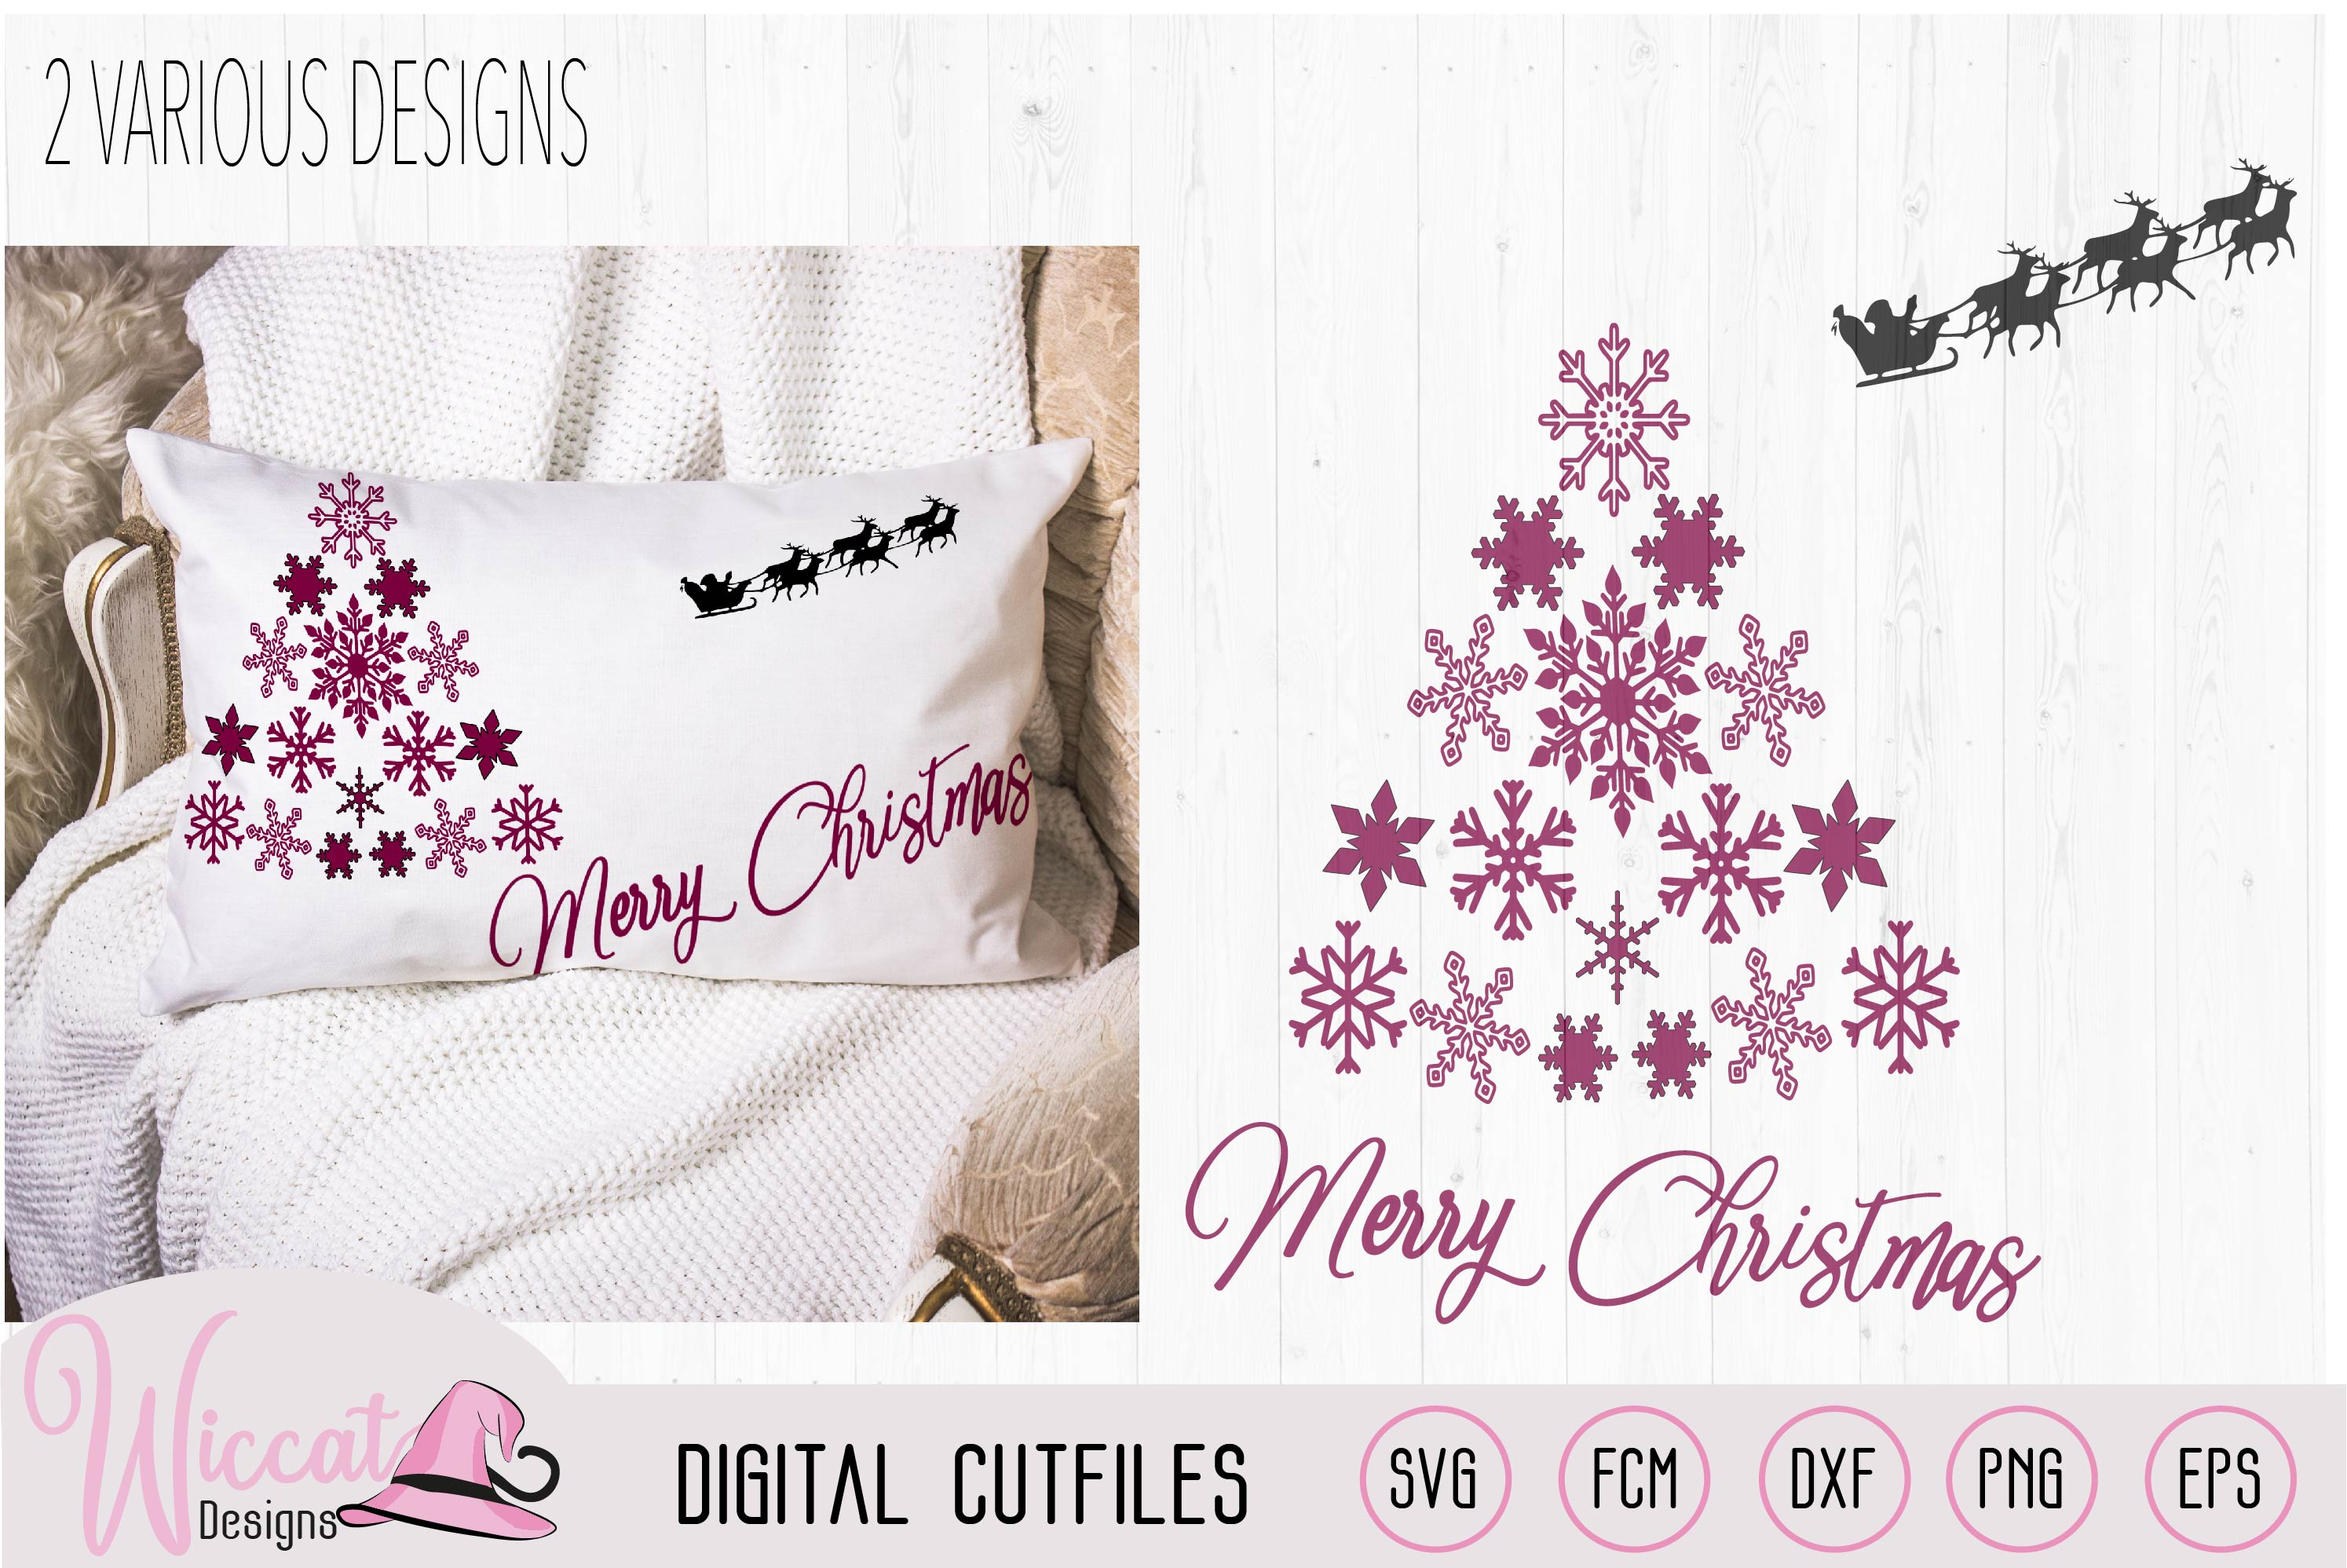 Download Free Snowflake Christmas Tree Graphic By Wiccatdesigns Creative Fabrica for Cricut Explore, Silhouette and other cutting machines.